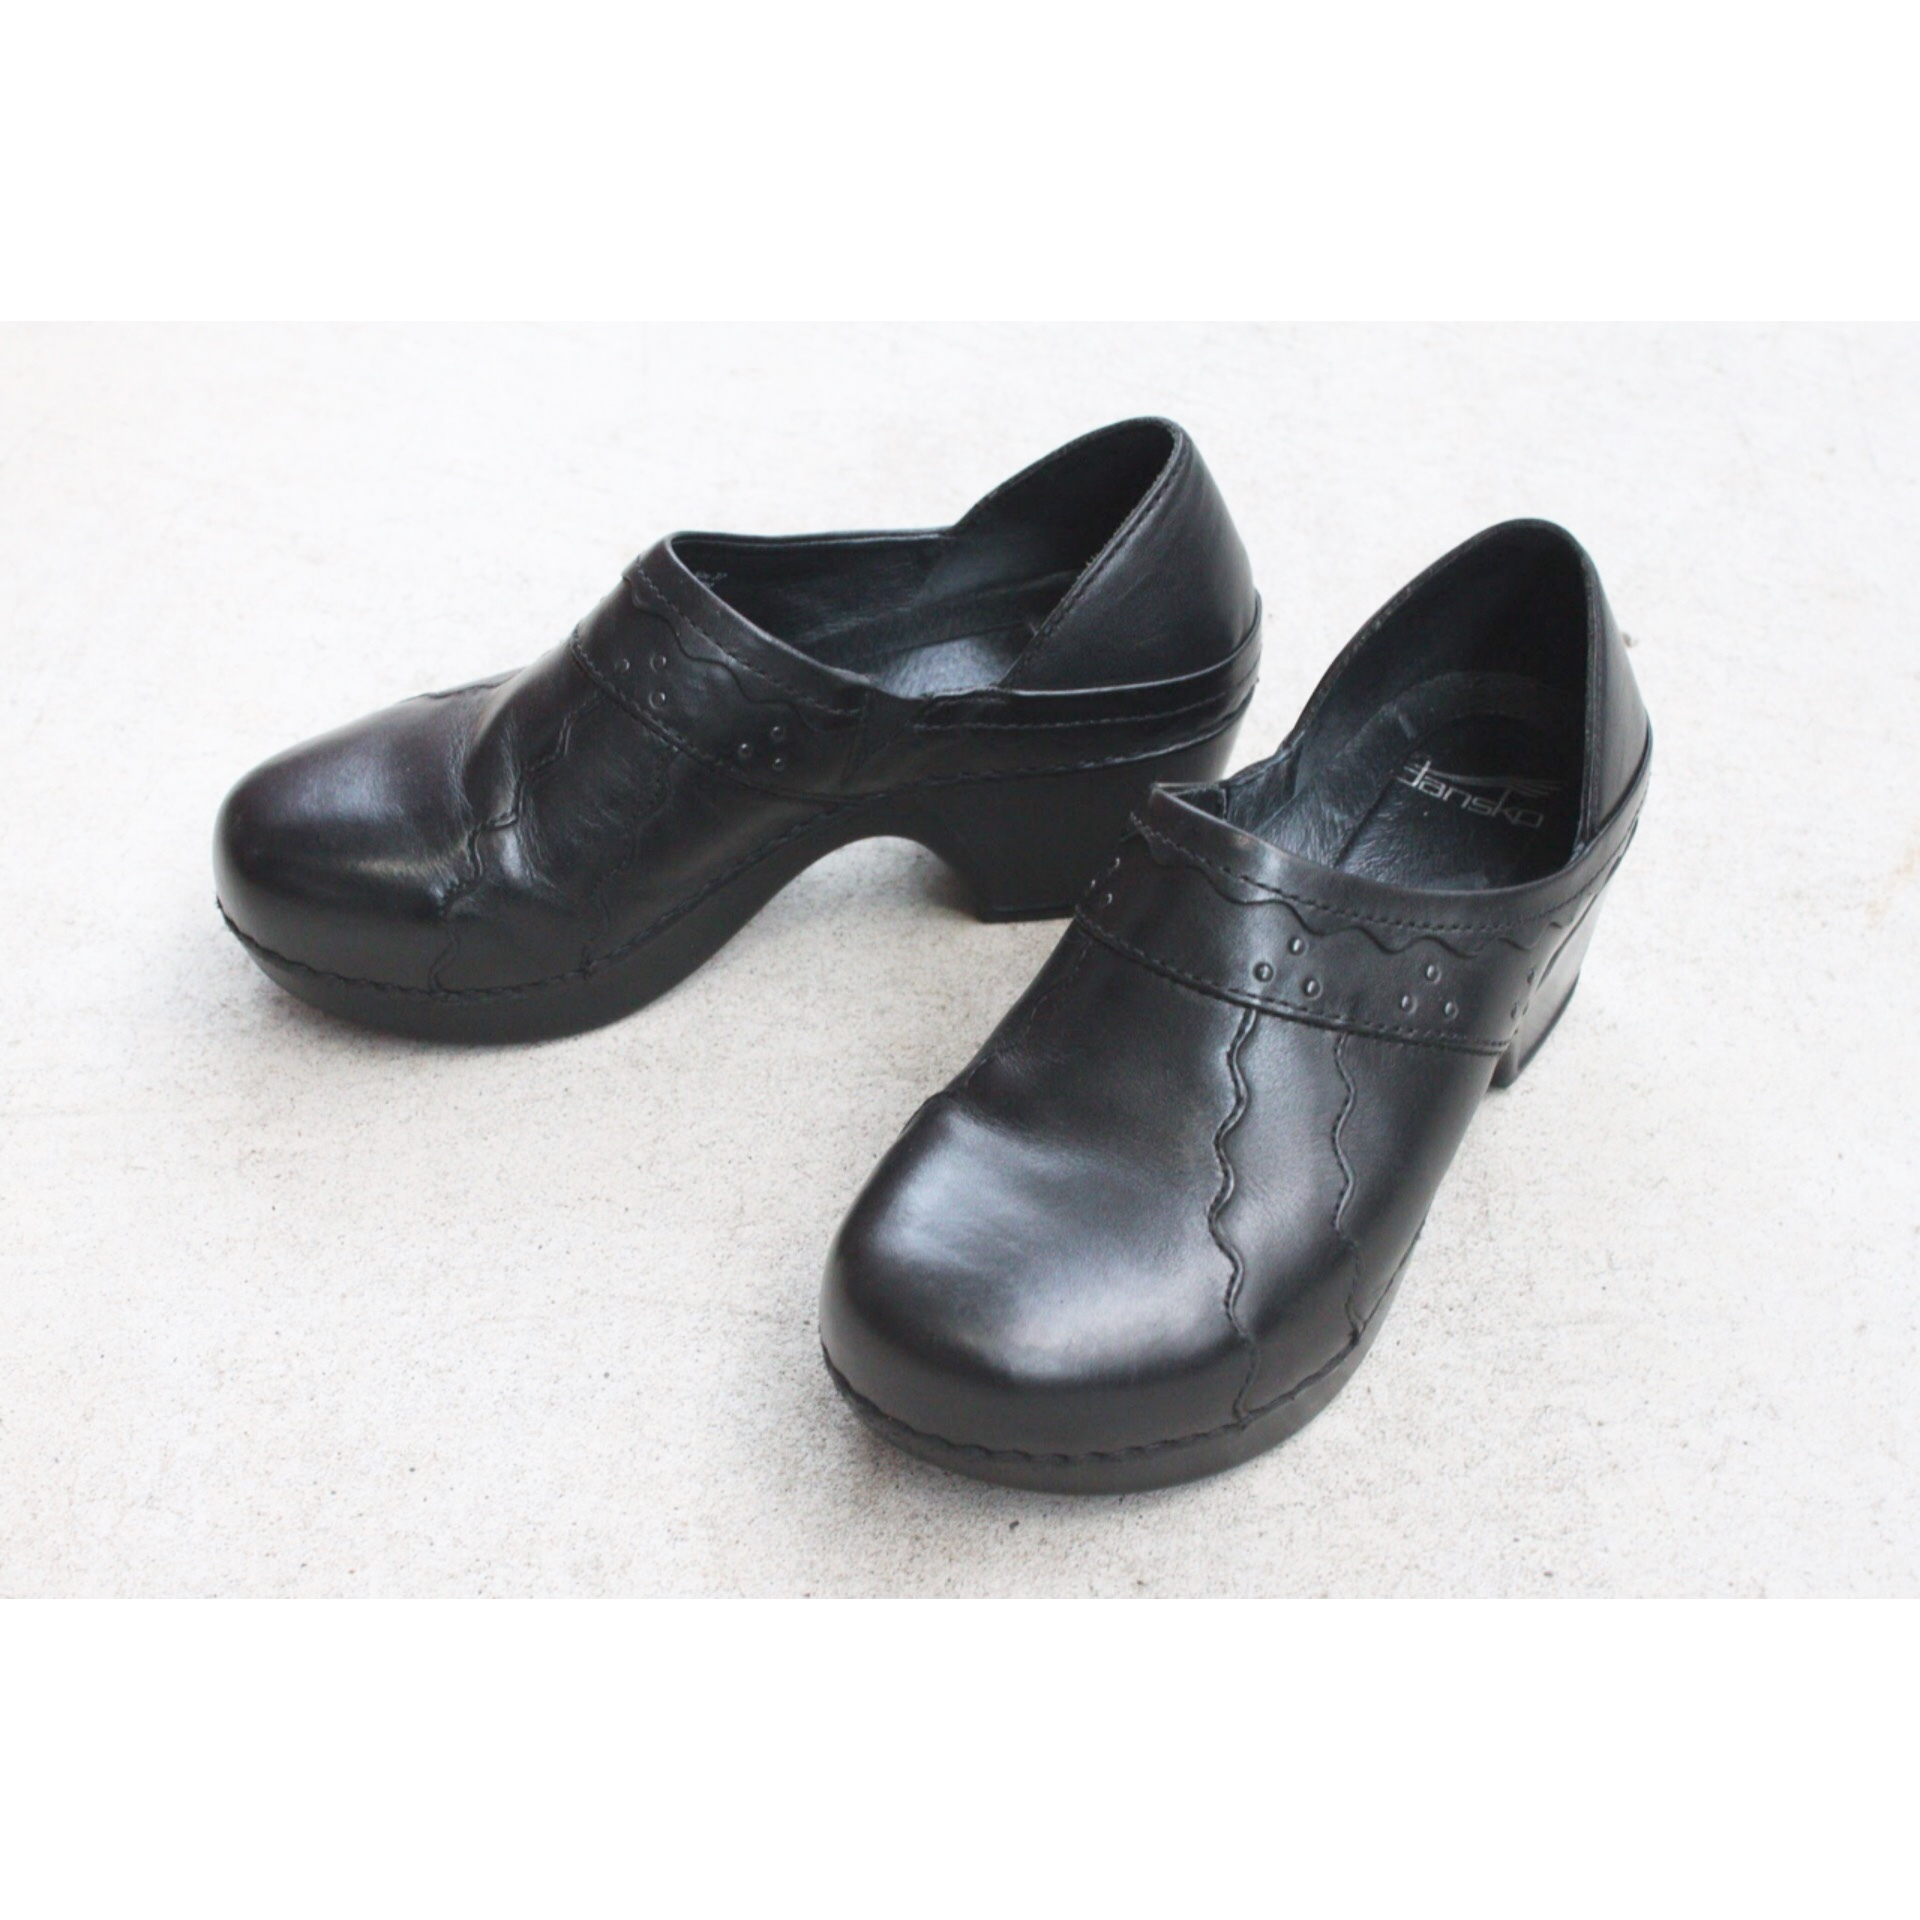 Vintage leather clog shoes by DANSKO